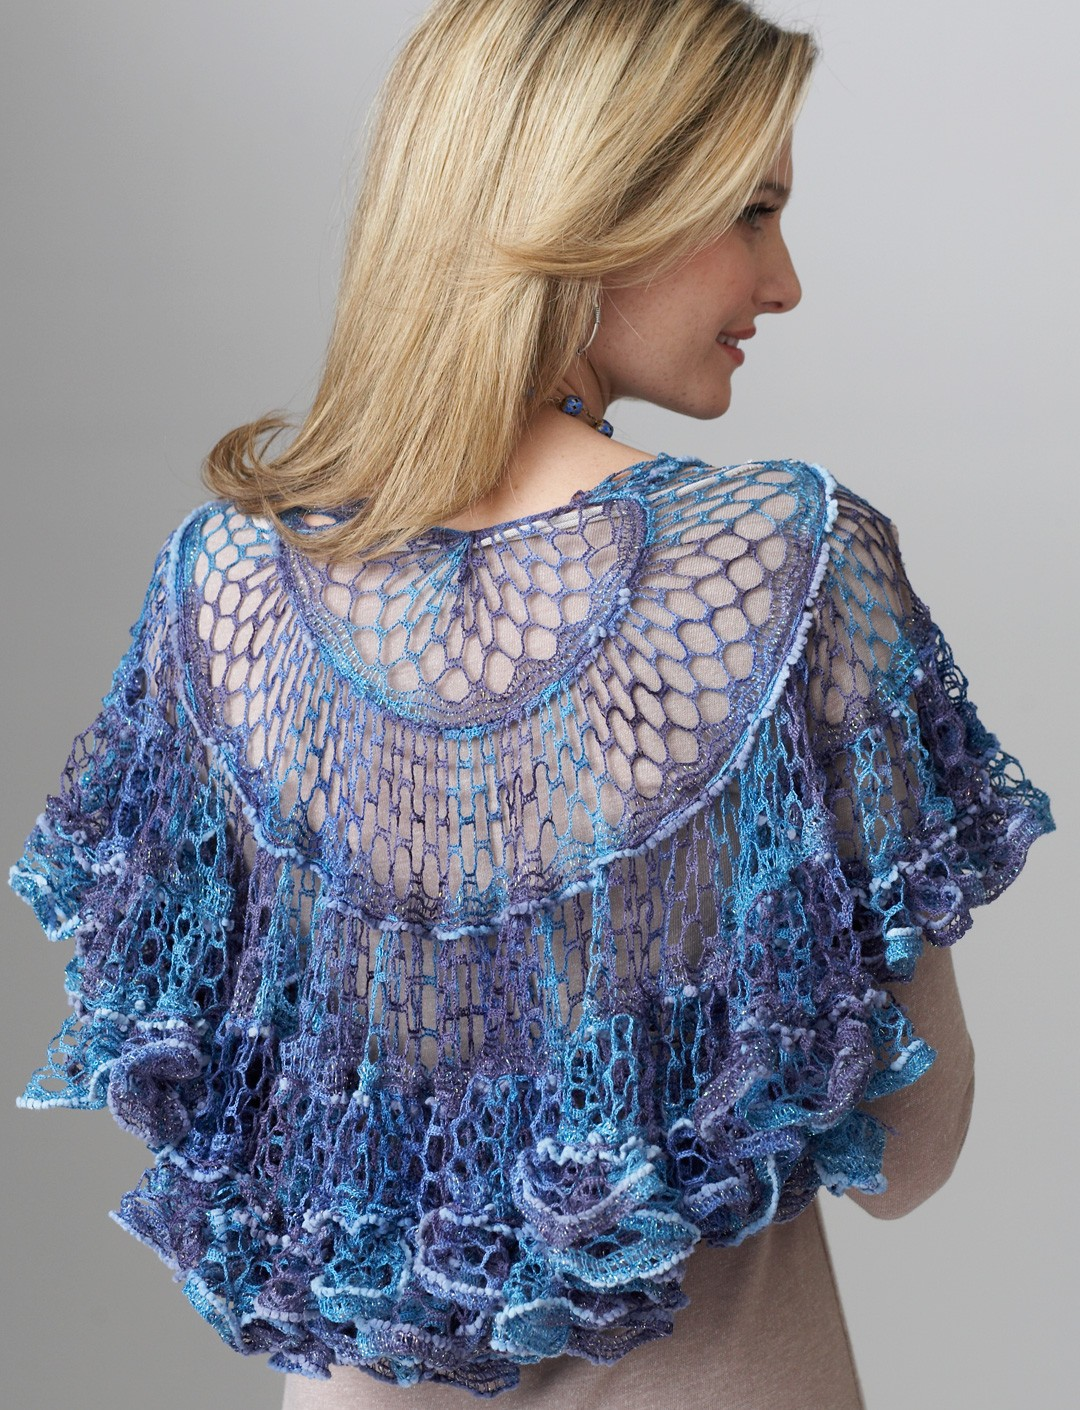 Free Crochet Patterns Using Patons Lace Yarn : Shawl Yarnspirations